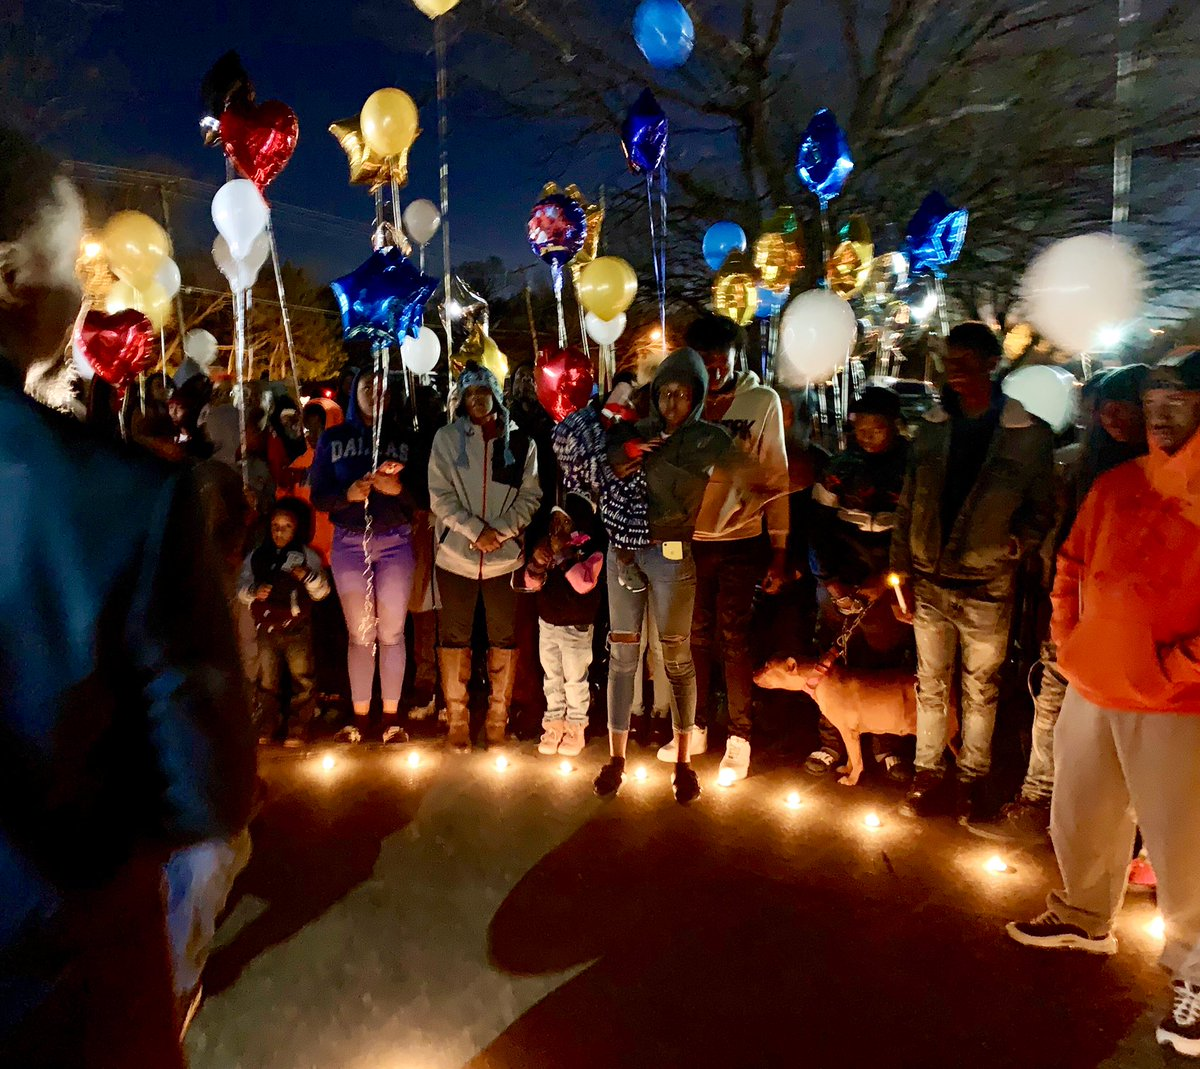 """""""We're all family over here in 75216. We love our community too just like anyone else.""""  A community gathered to remember 18yo Marc Strickland. They say he was known for his lively personality and athleticism long before his name was in the news. Story tonight on @NBCDFW at 10."""